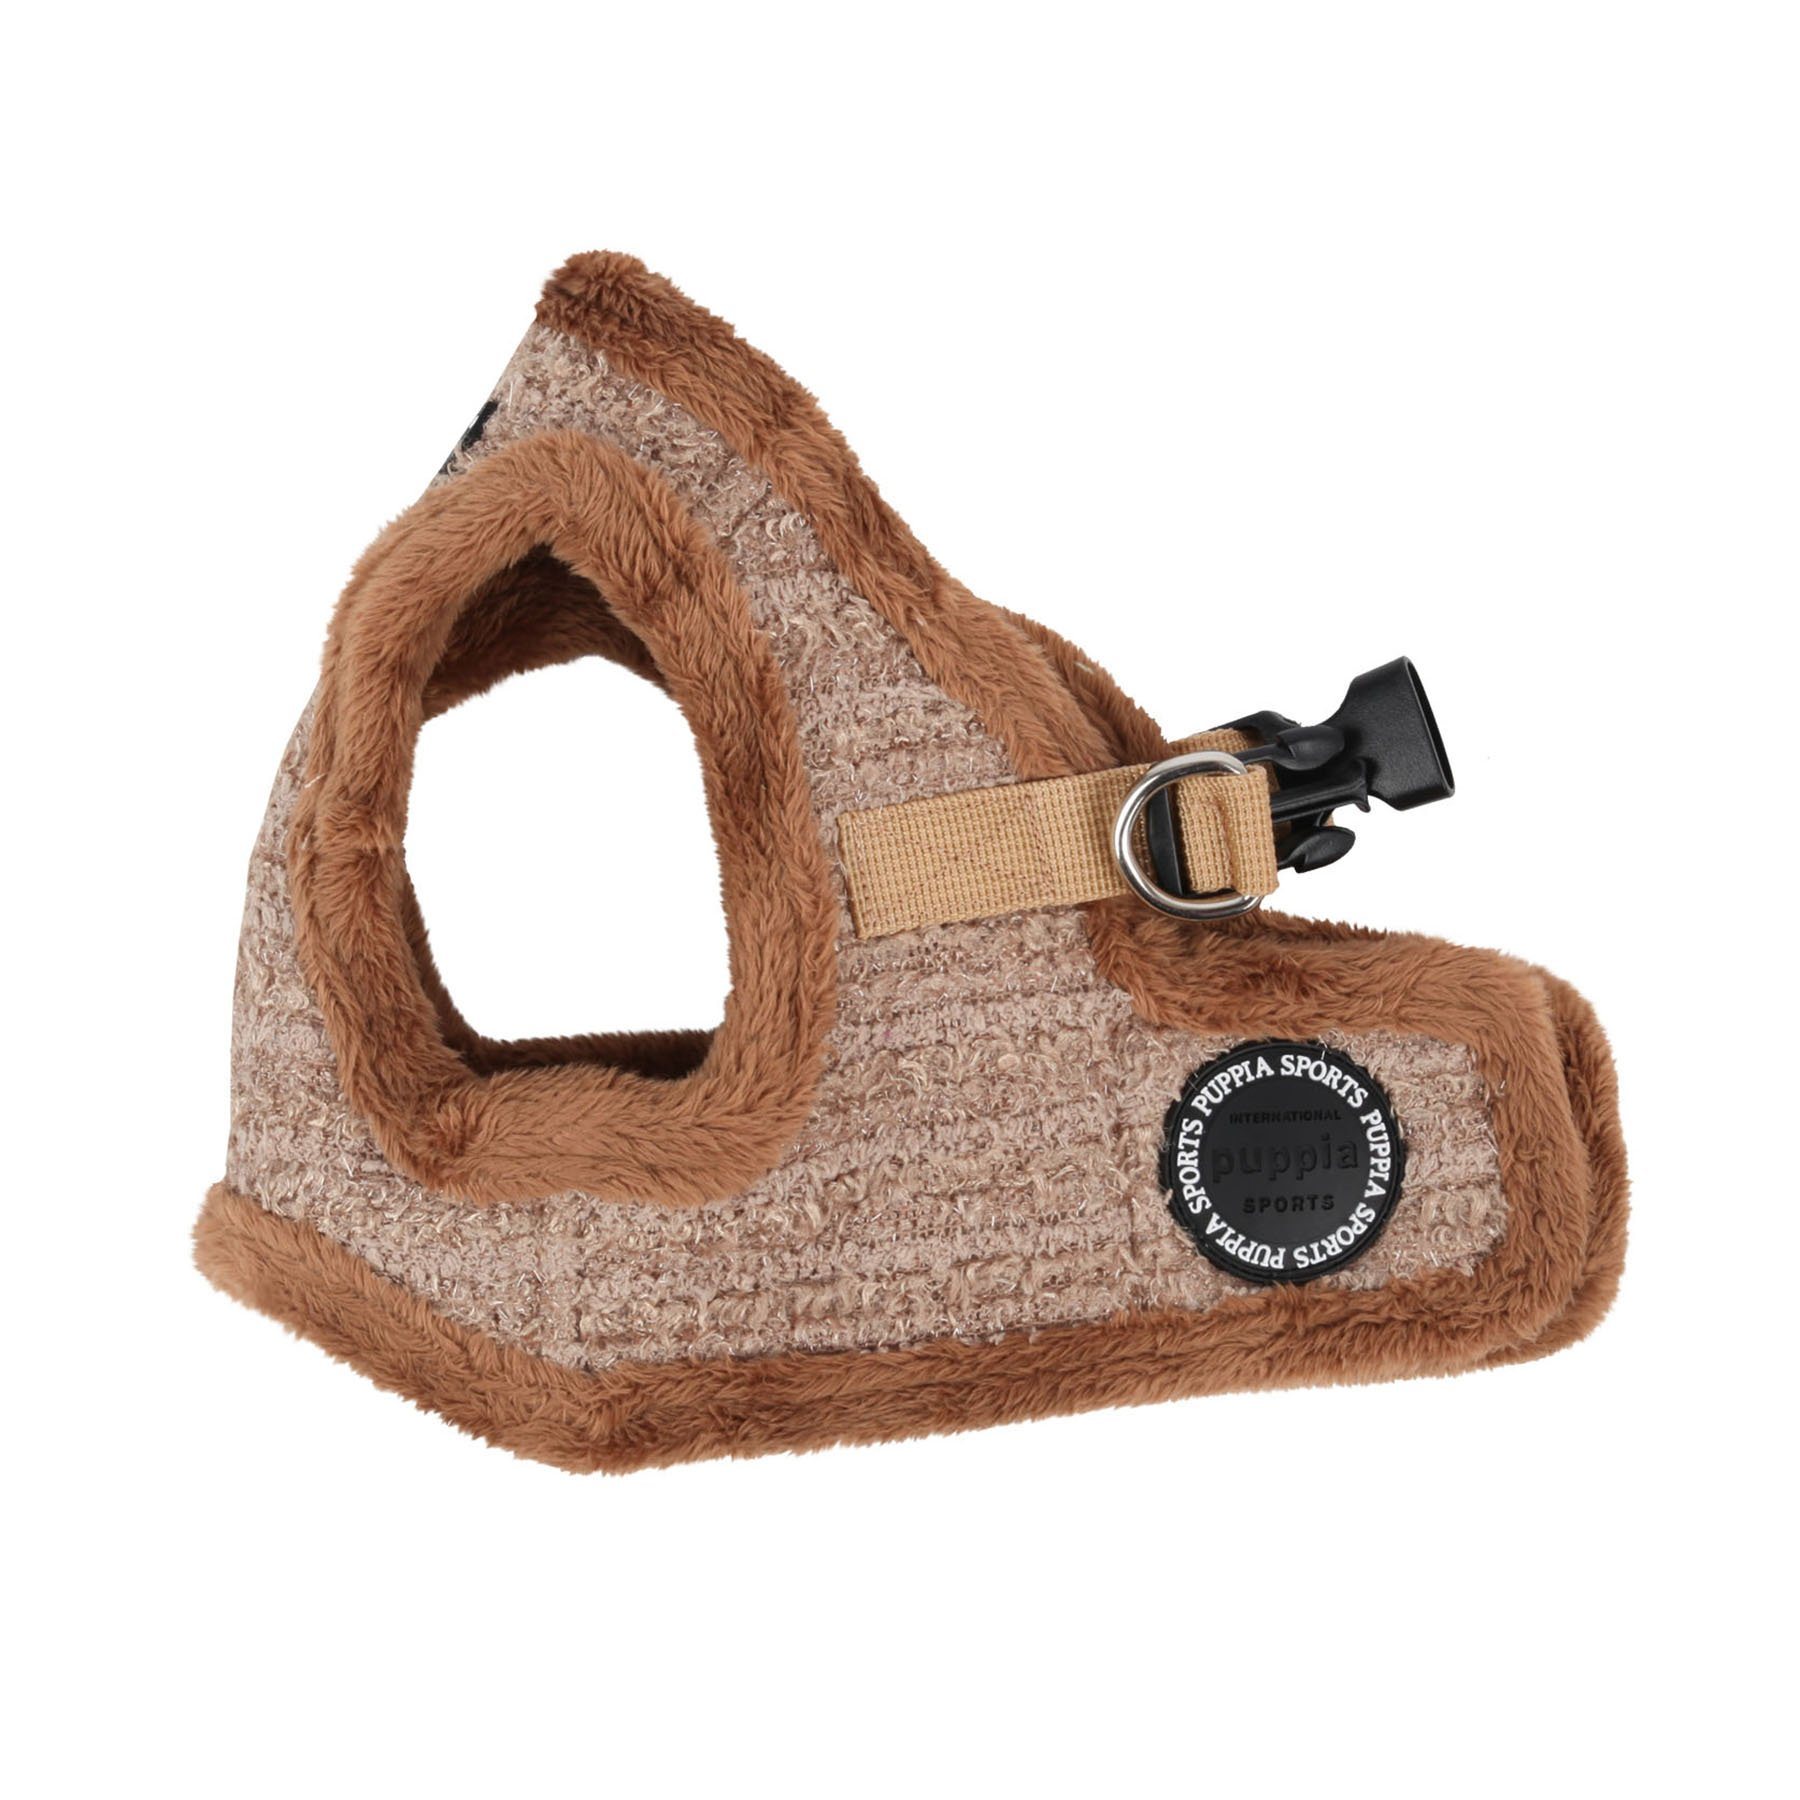 Puppia Authentic Wafer Vest Harness B, Medium, Beige